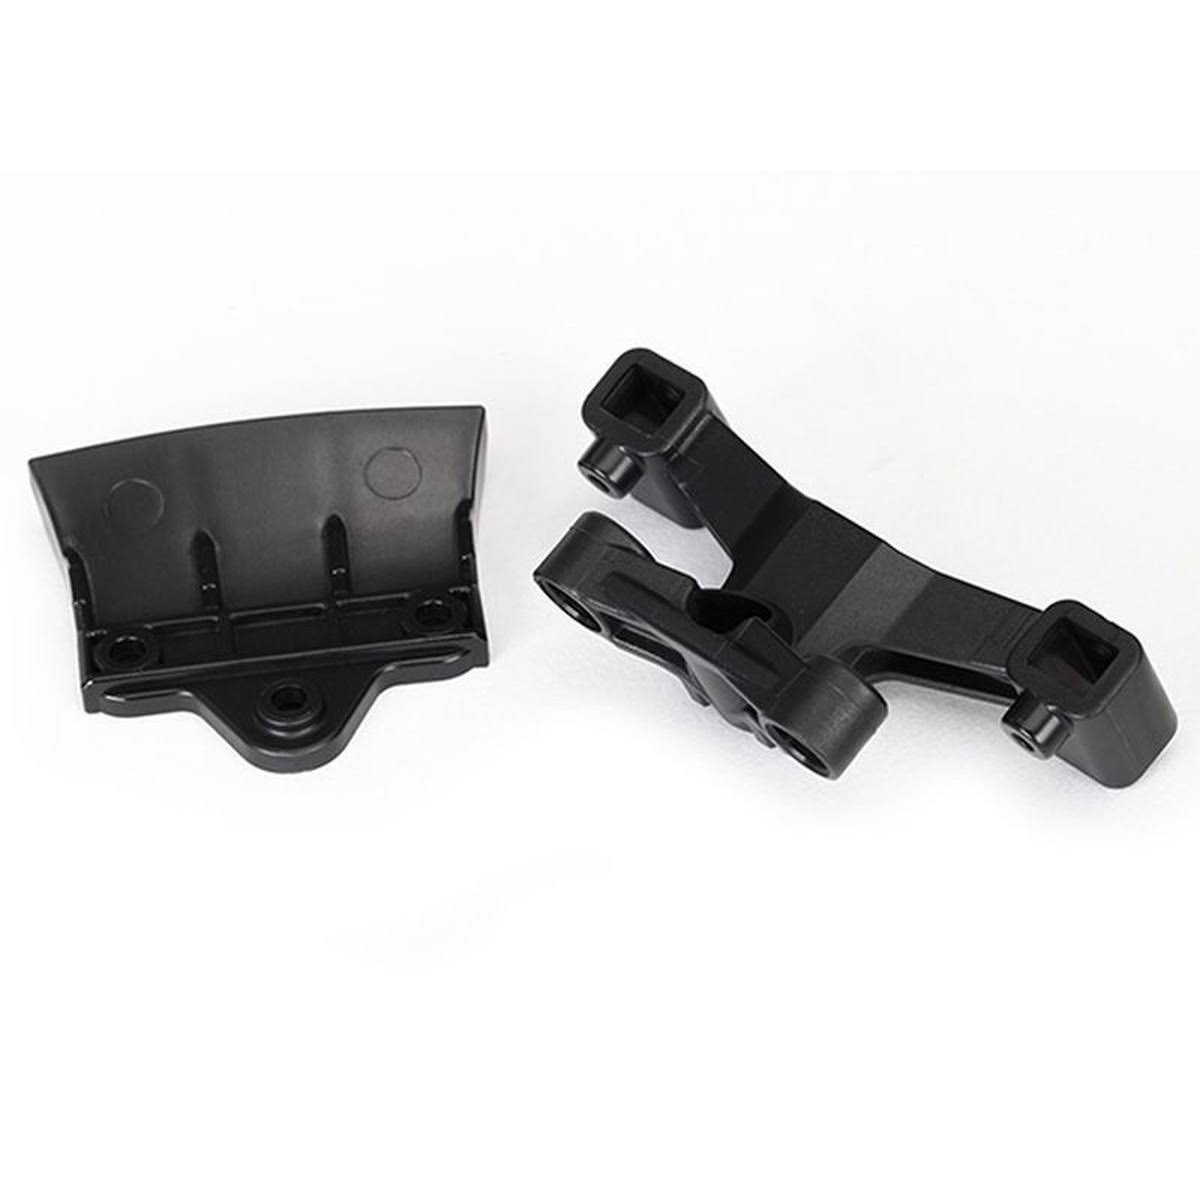 Traxxas 8336 Rear Bumper & Body Mount Set